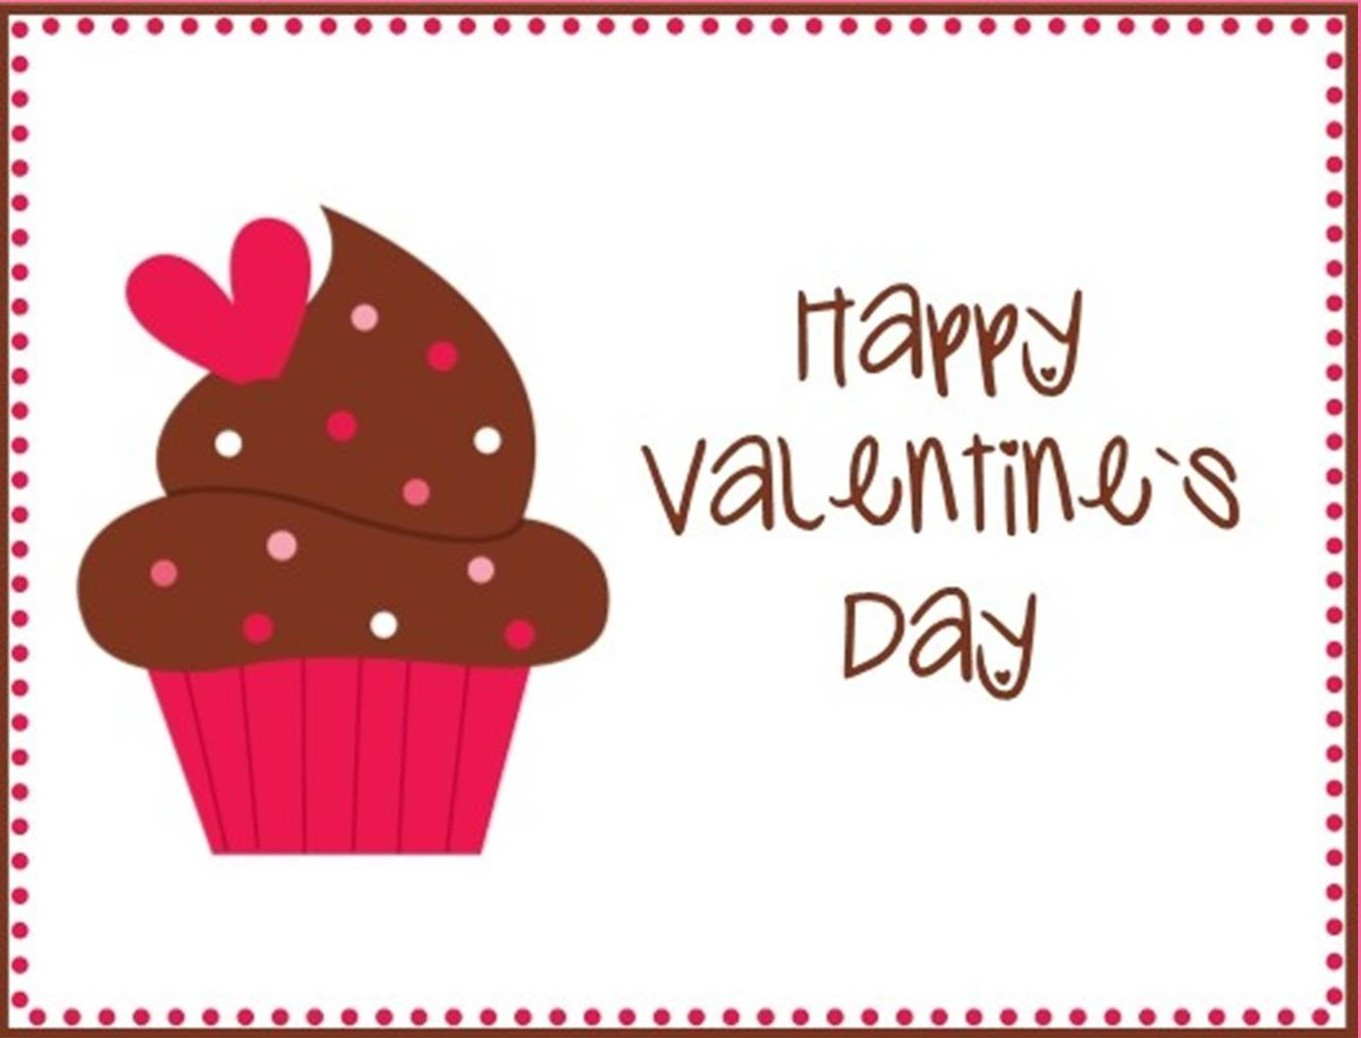 Download Free Happy Valentines Day Clip Art 2017 Images.